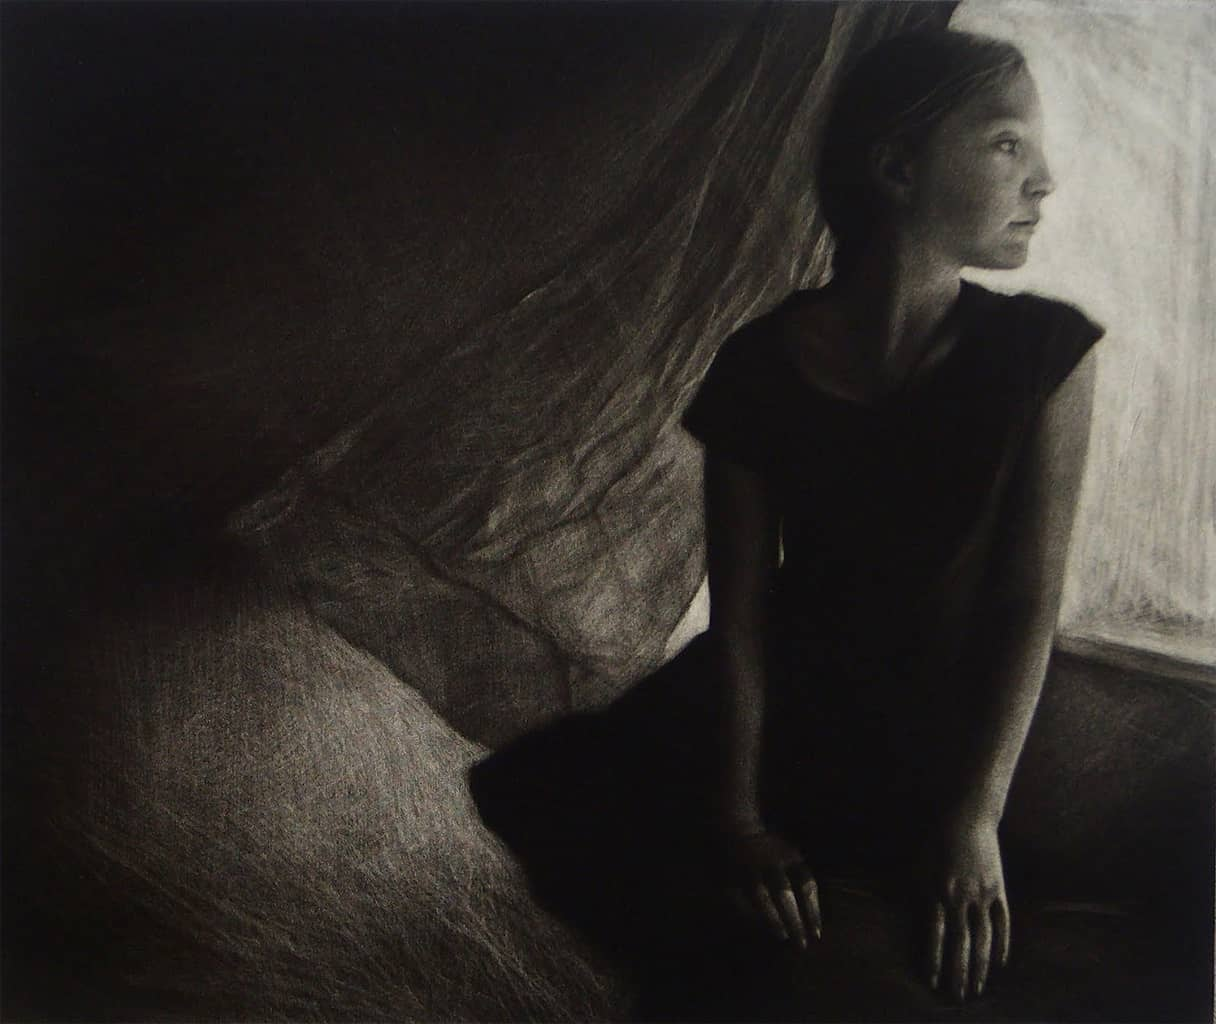 """""""Girl by the Window"""" - black and white portrait picture of a young girl standing by the window. Original print mezzotint by painter-printmaker Marina Kim"""